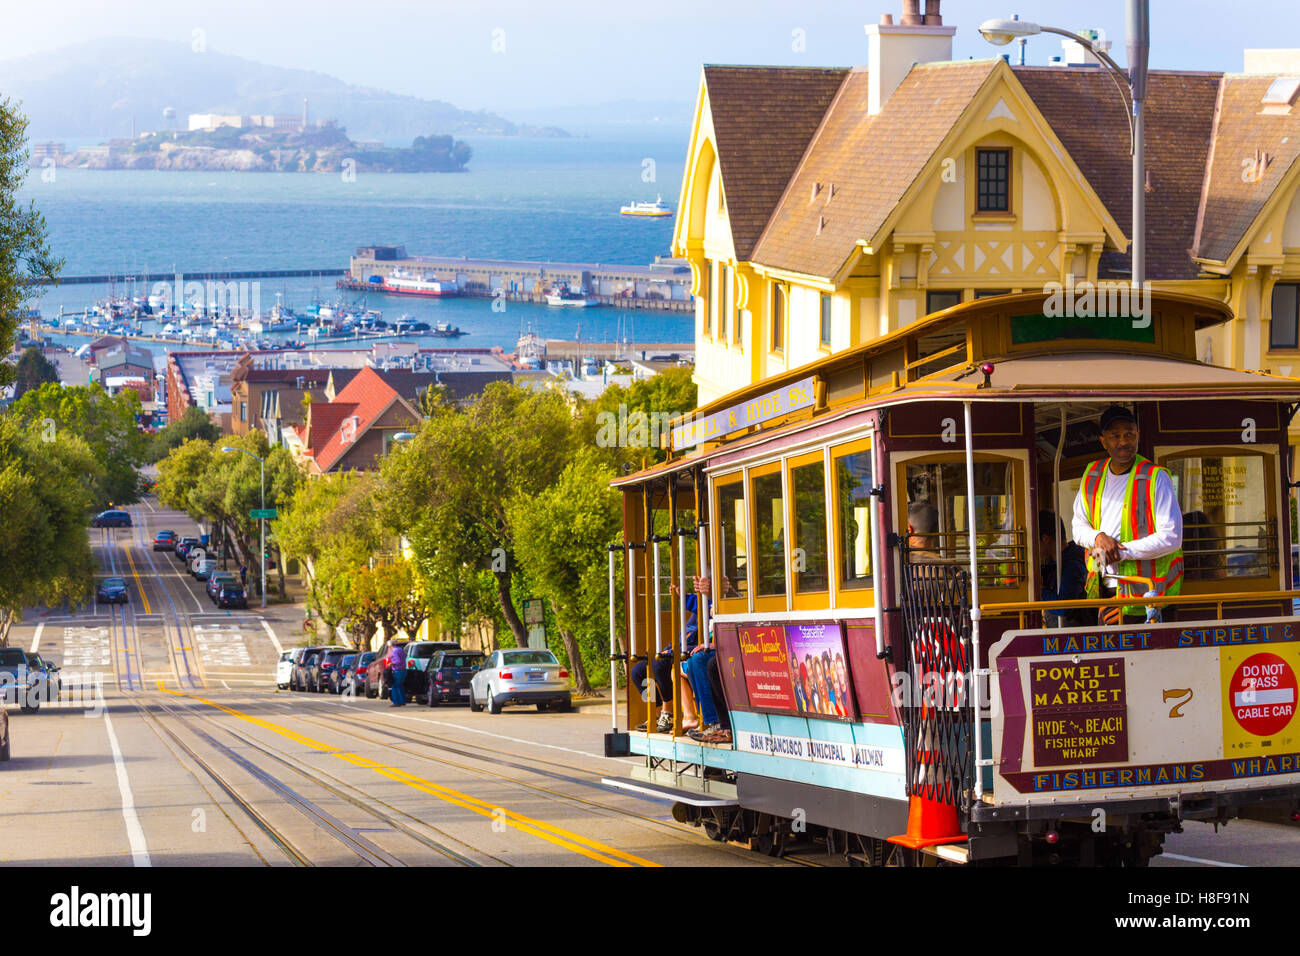 Brakeman appying cable car brakes going downhill on steep Hyde Street hill with sweeping view of Alcatraz Prison, - Stock Image